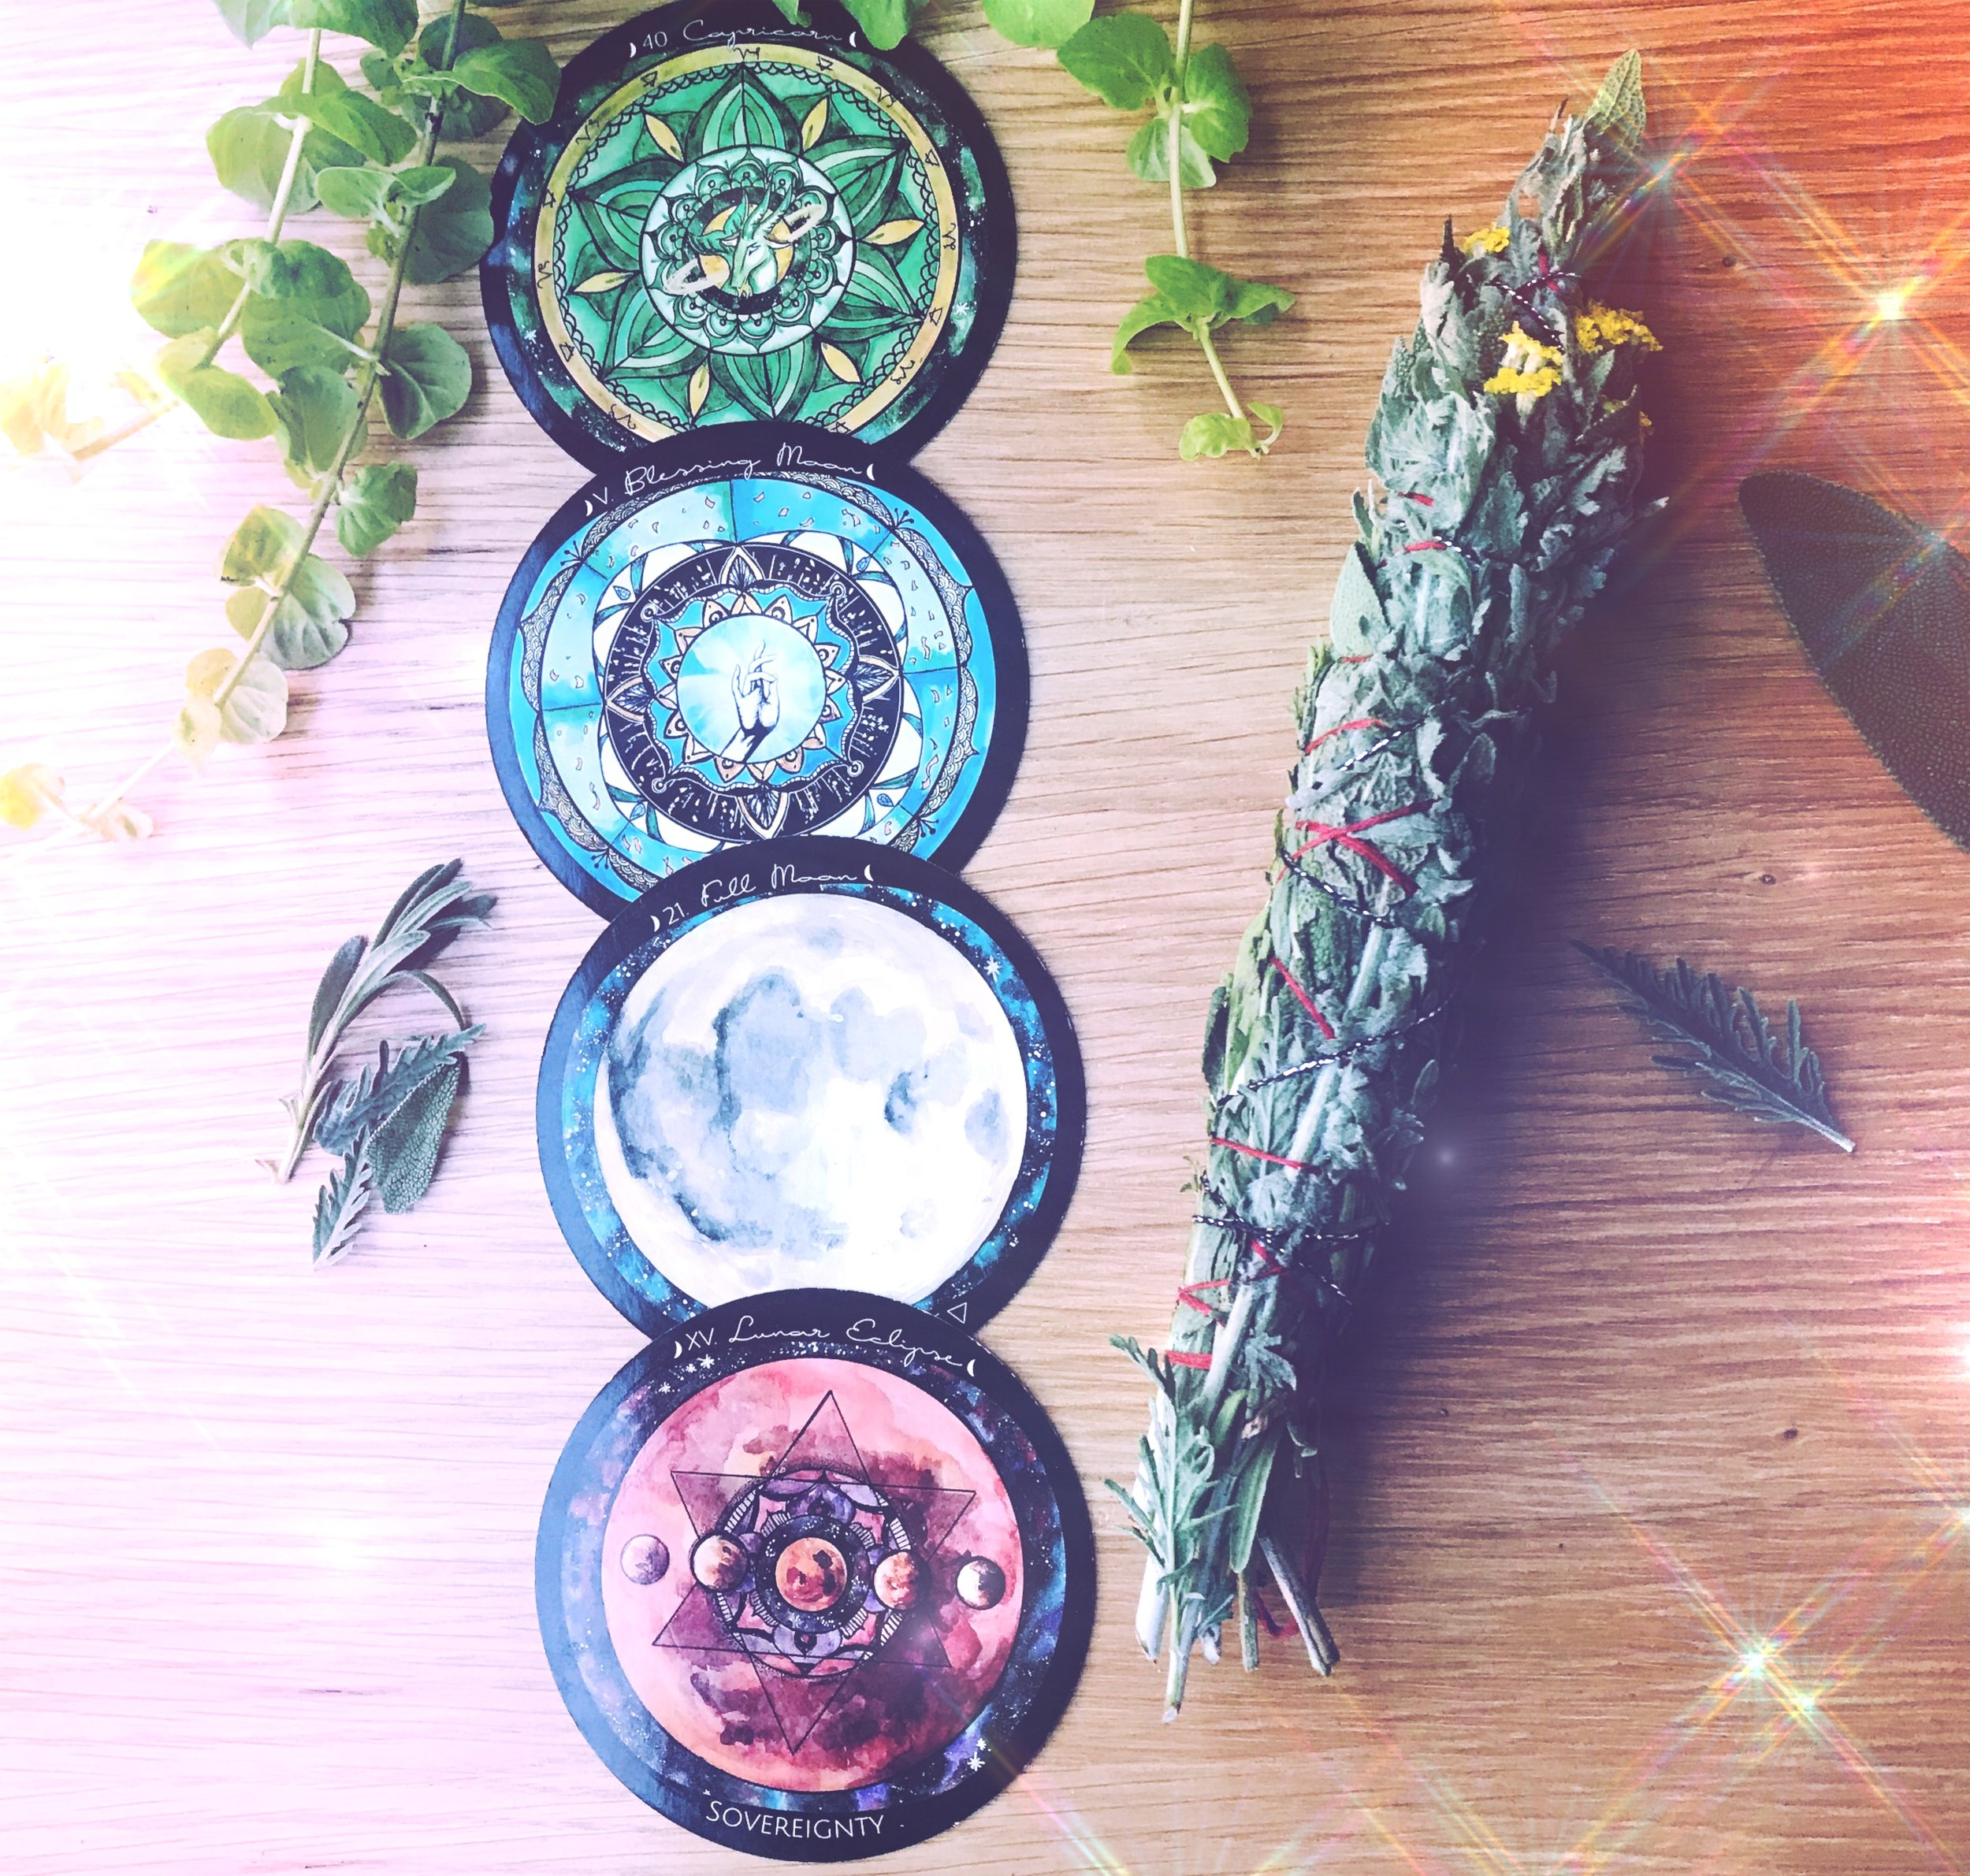 A Full Blessing Moon Eclipse Ritual | Create Your Own Sacred Smudge wand